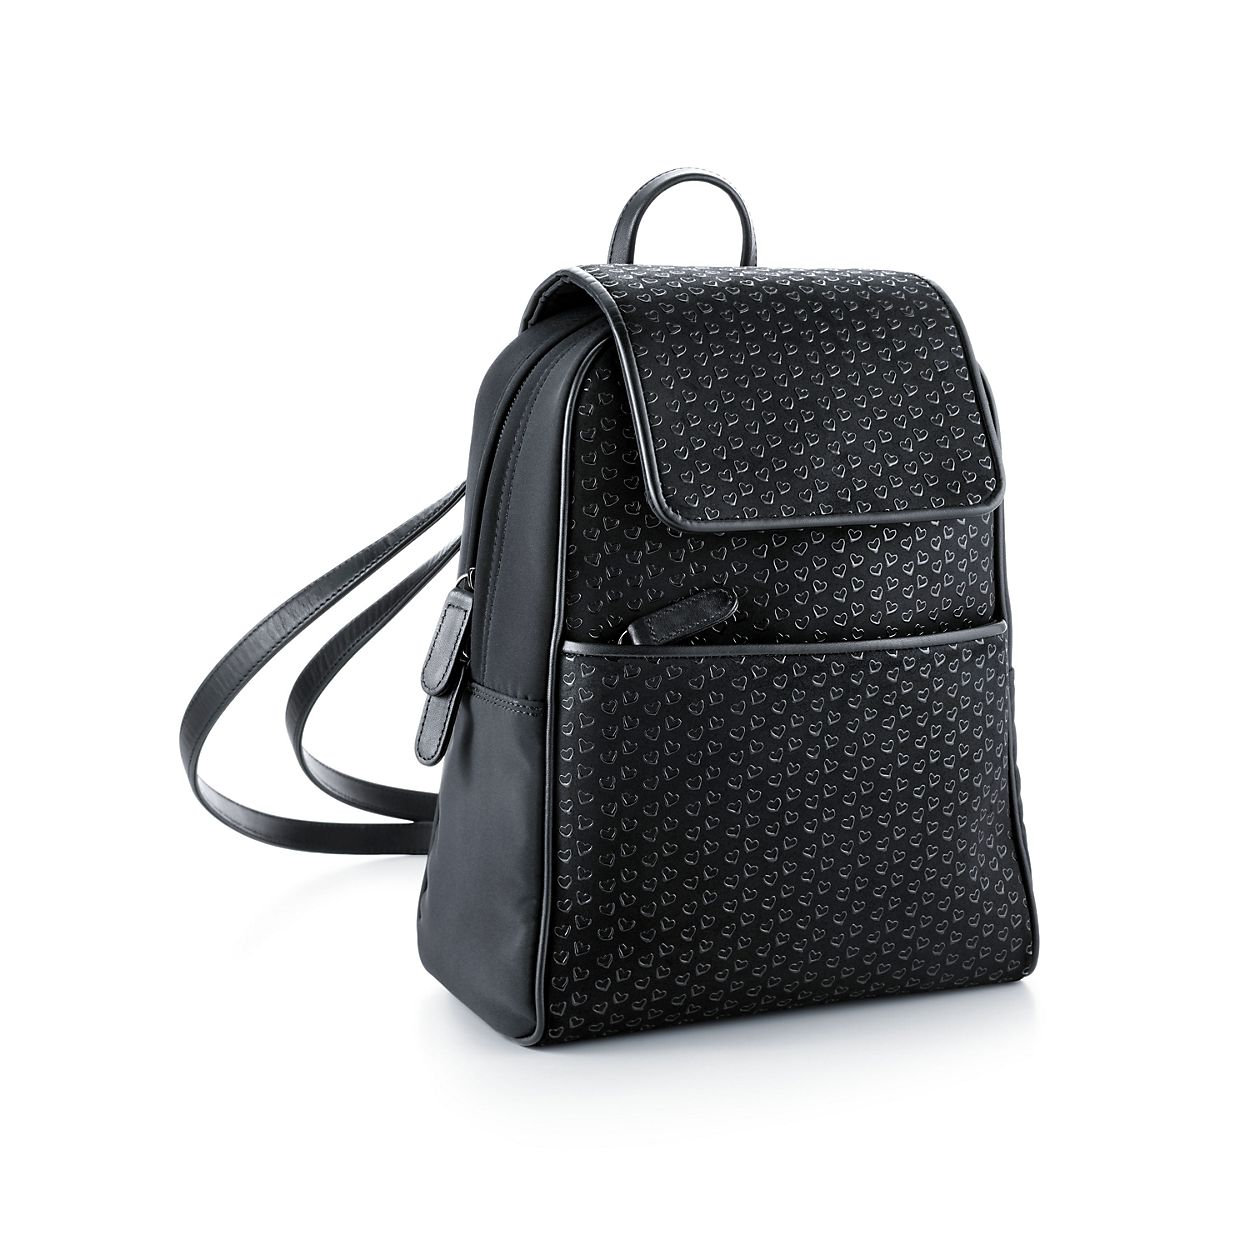 Elsa Peretti® backpack in black leather with lacquered Open Hearts ...